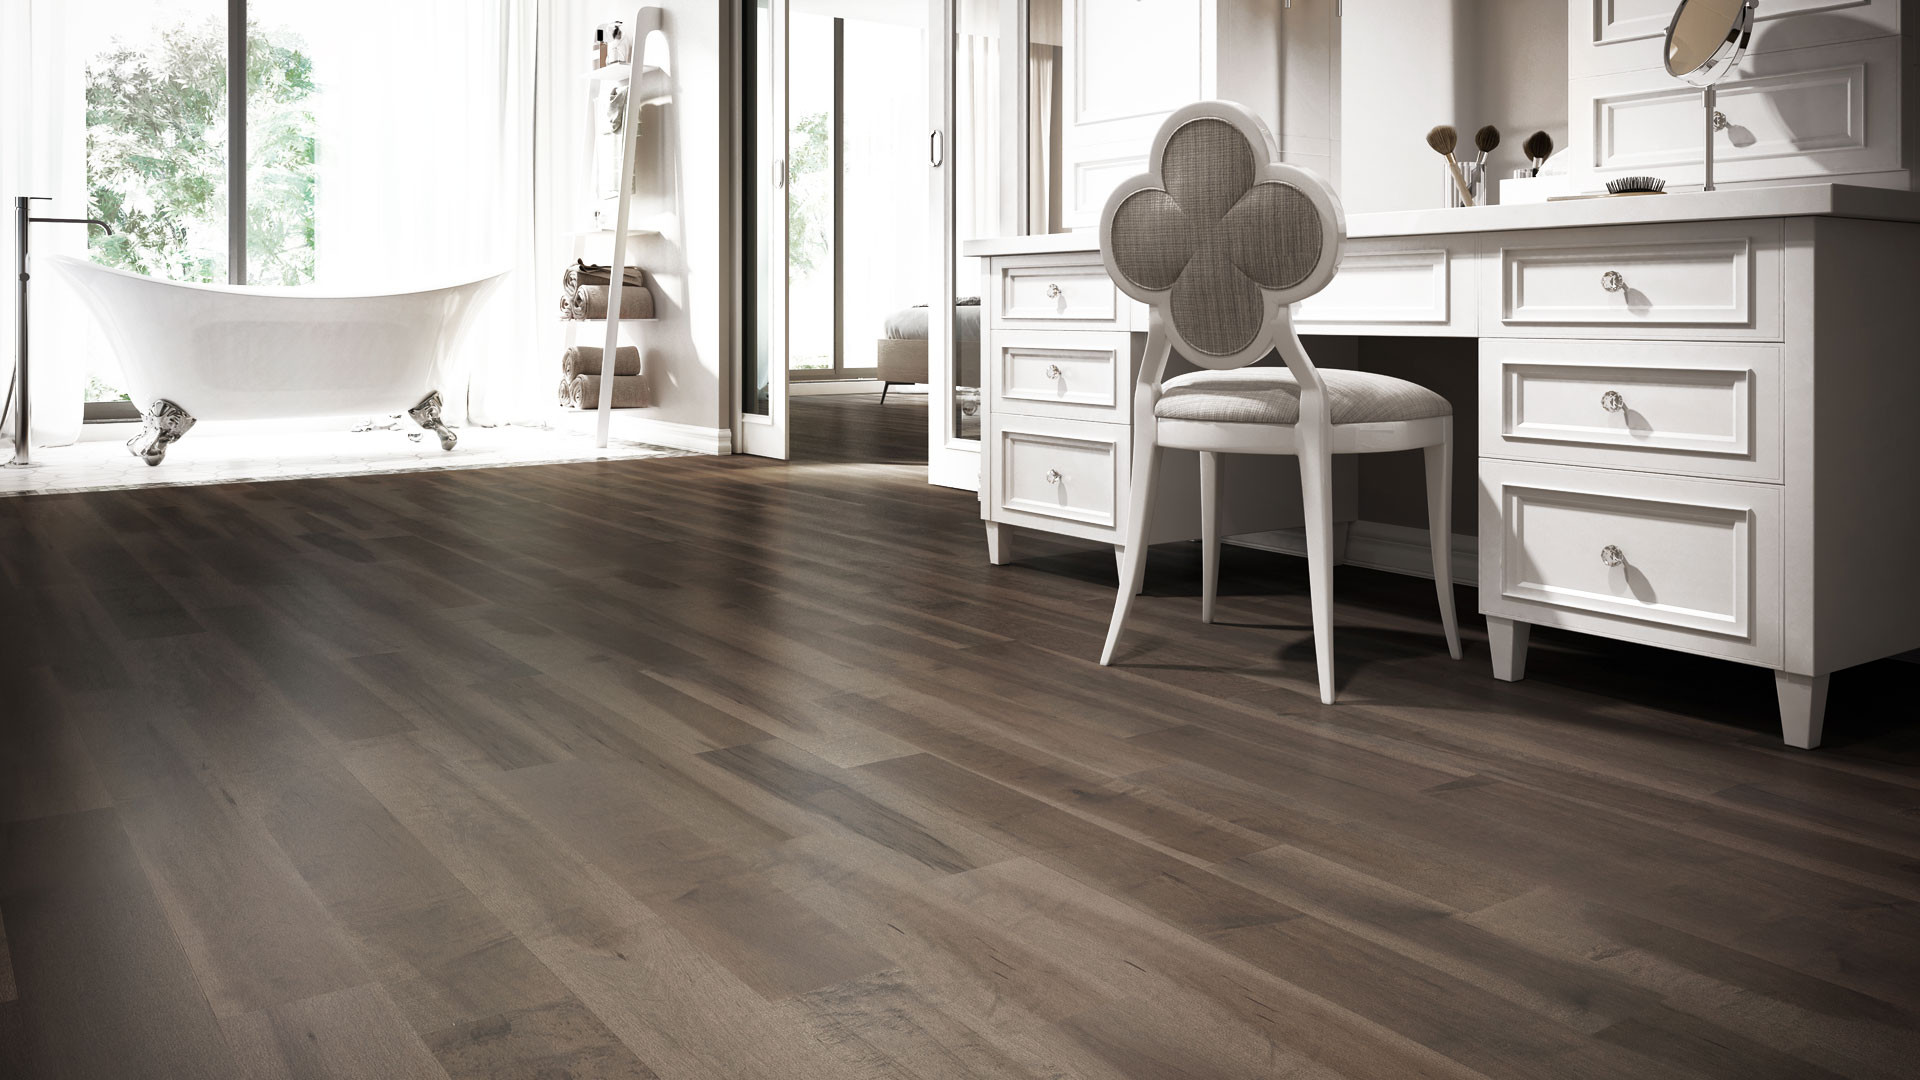 grey hardwood floors houzz of 4 latest hardwood flooring trends lauzon flooring regarding learn more about our pure genius by reading our blog post the smartest hardwood flooring weve ever seen